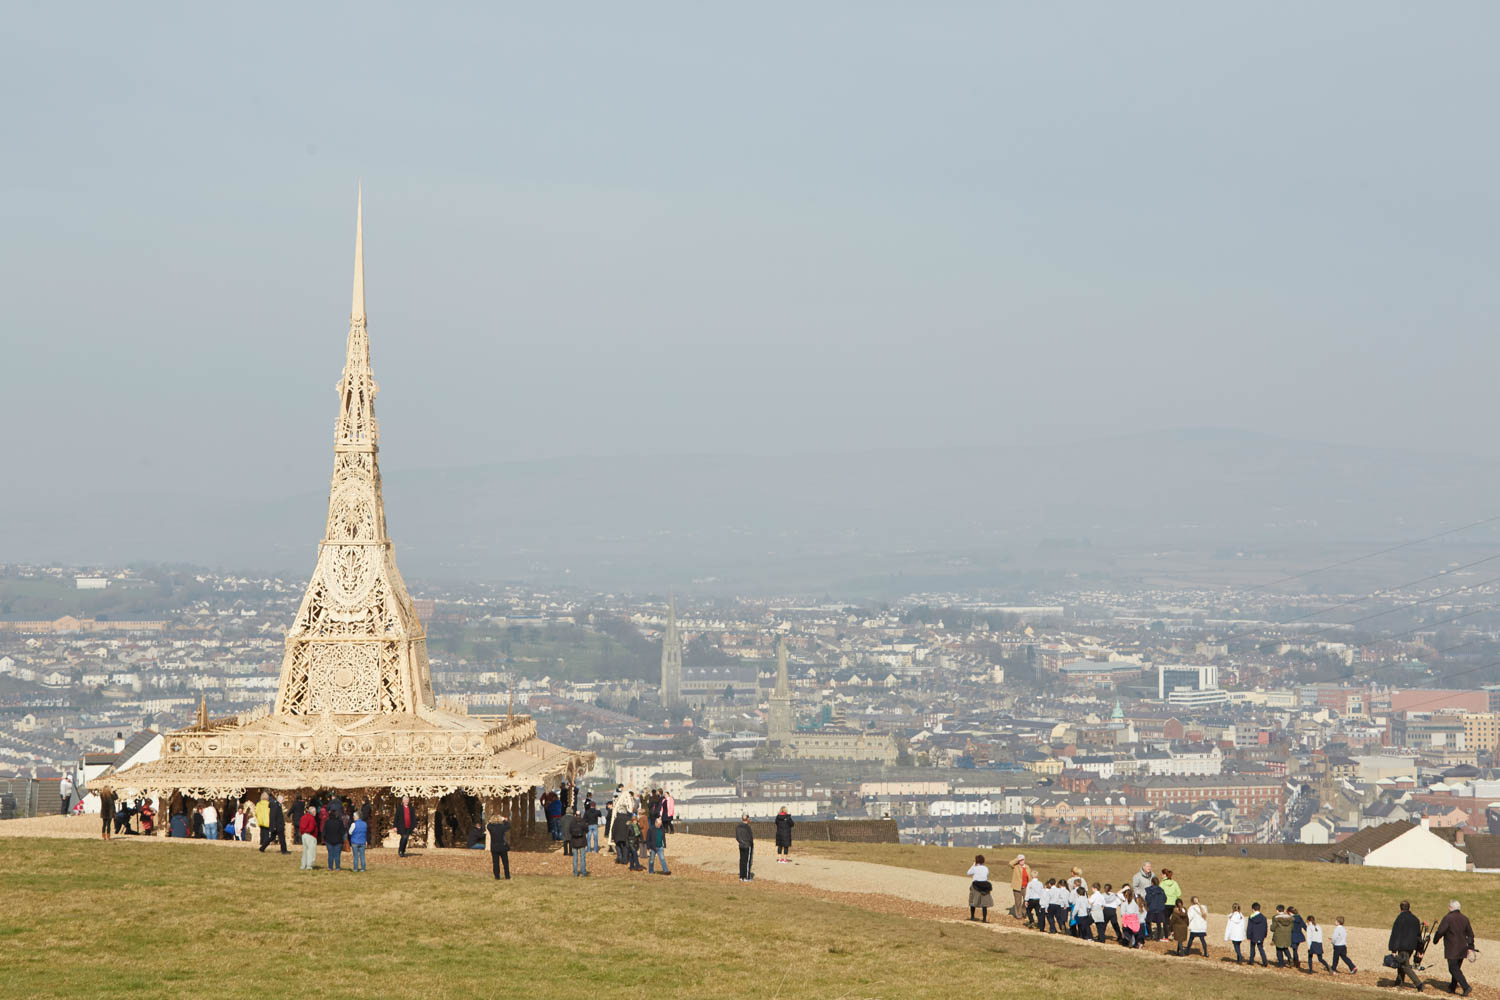 View of the people walking around Temple in the day on a hill with Derry~Londonderry visible in the background